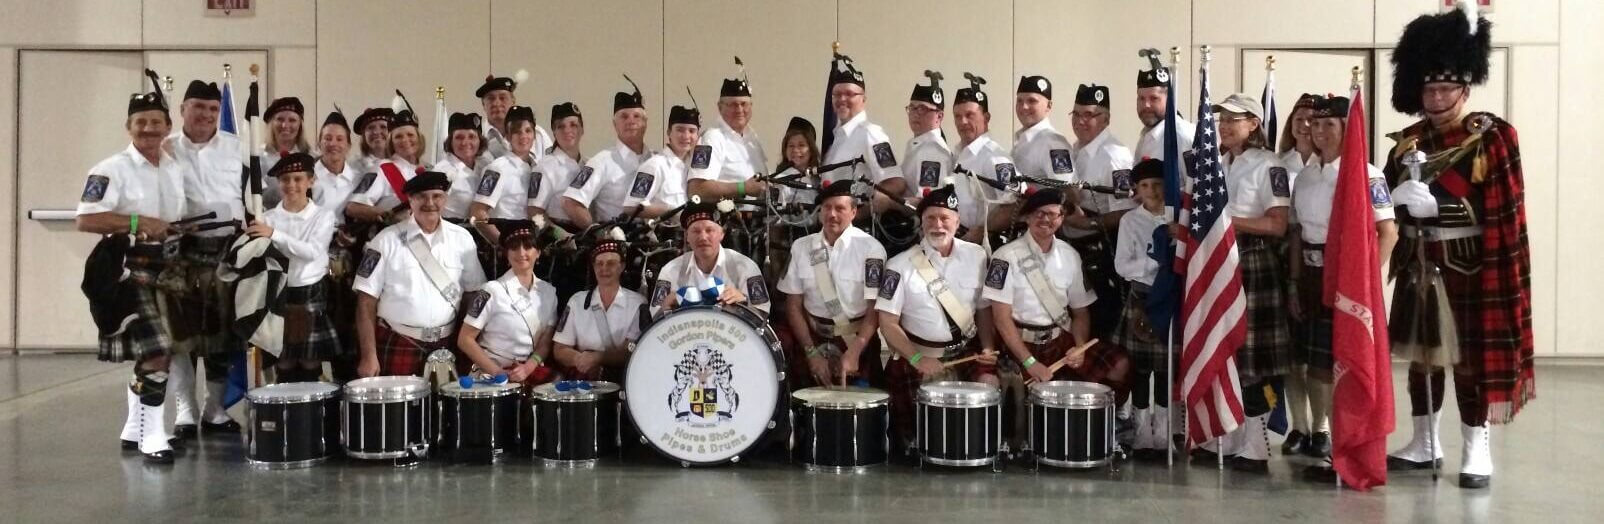 Pipers at Colts game 2014